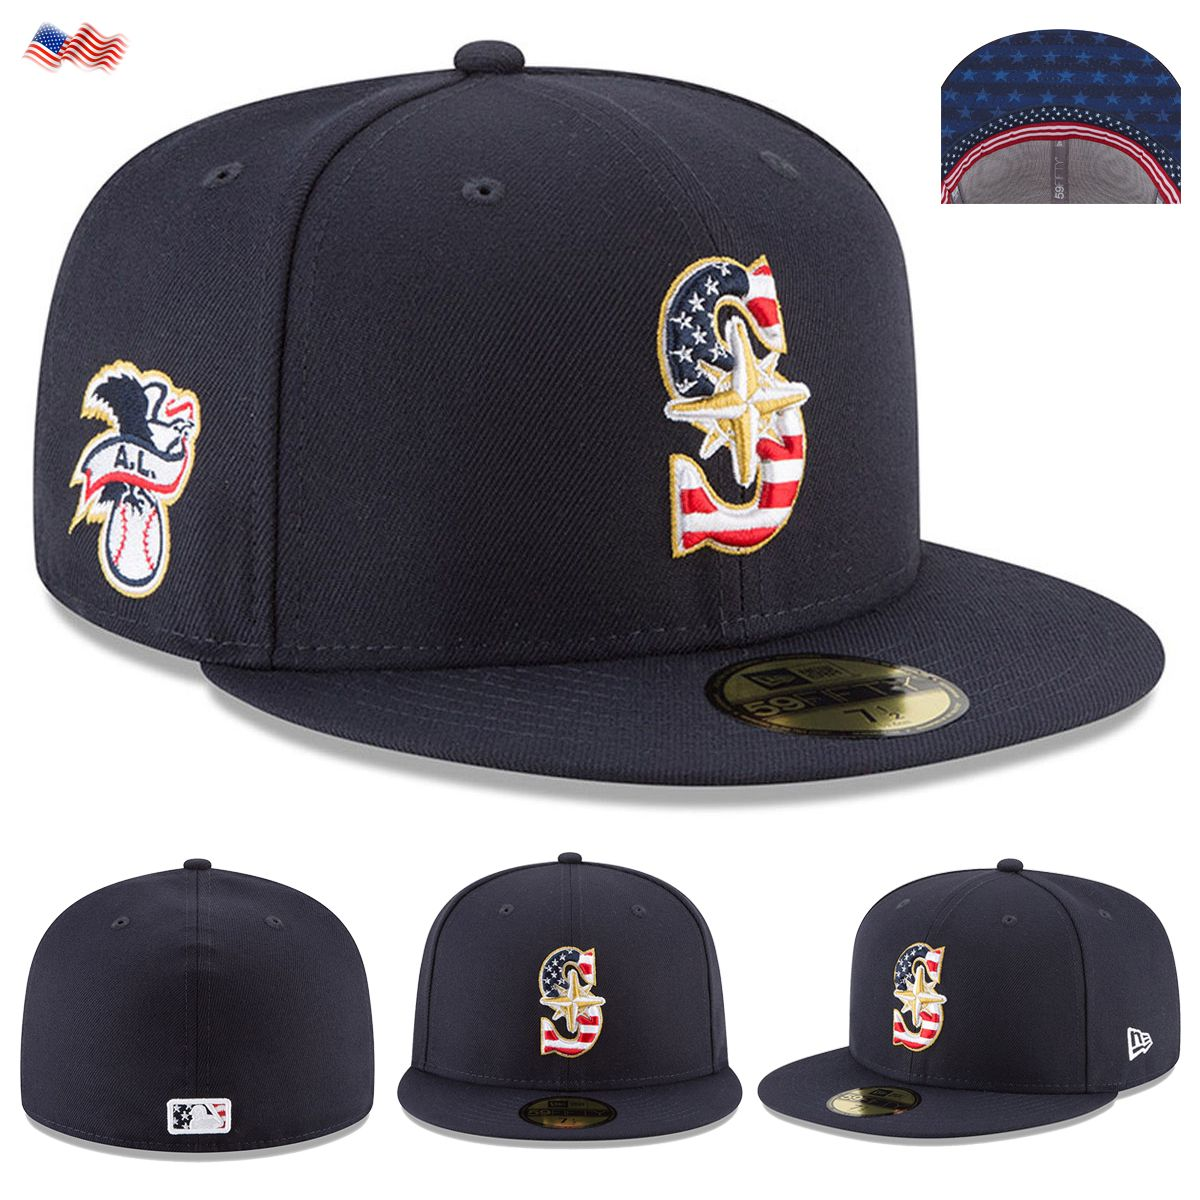 e4c714b2 Celebrate the 4th of July 2018 holiday in style when you grab this Stars &  Stripes Seattle Mariners On-Field 59FIFTY Fitted Hat from New Era.